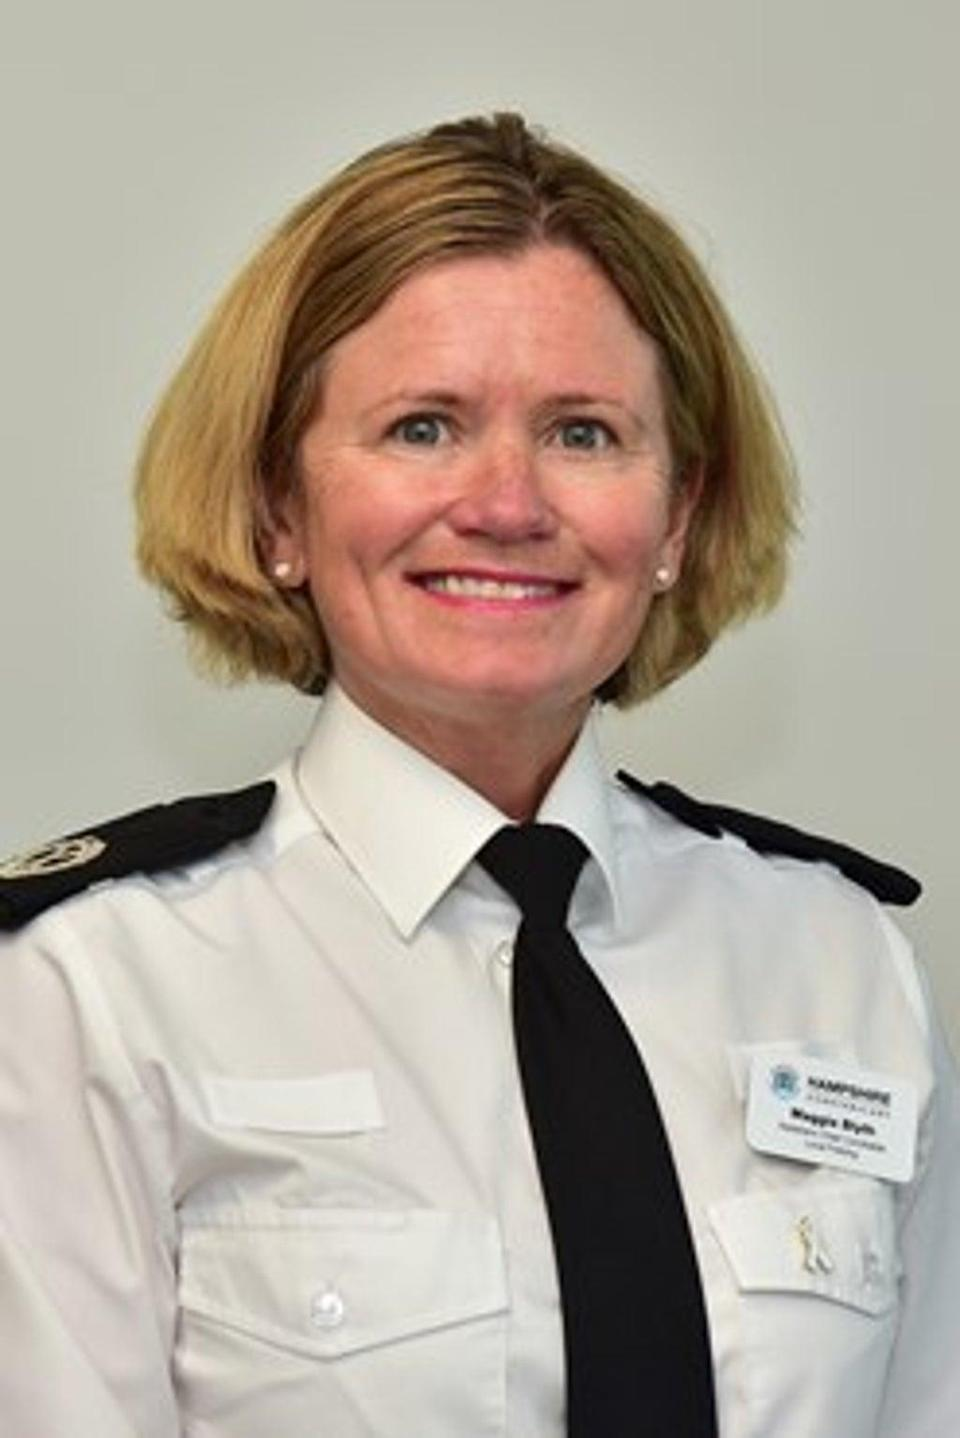 Deputy Chief Constable Maggie Blyth has been appointed as the National Police Lead for Violence Against Women and Girls (NPCC)